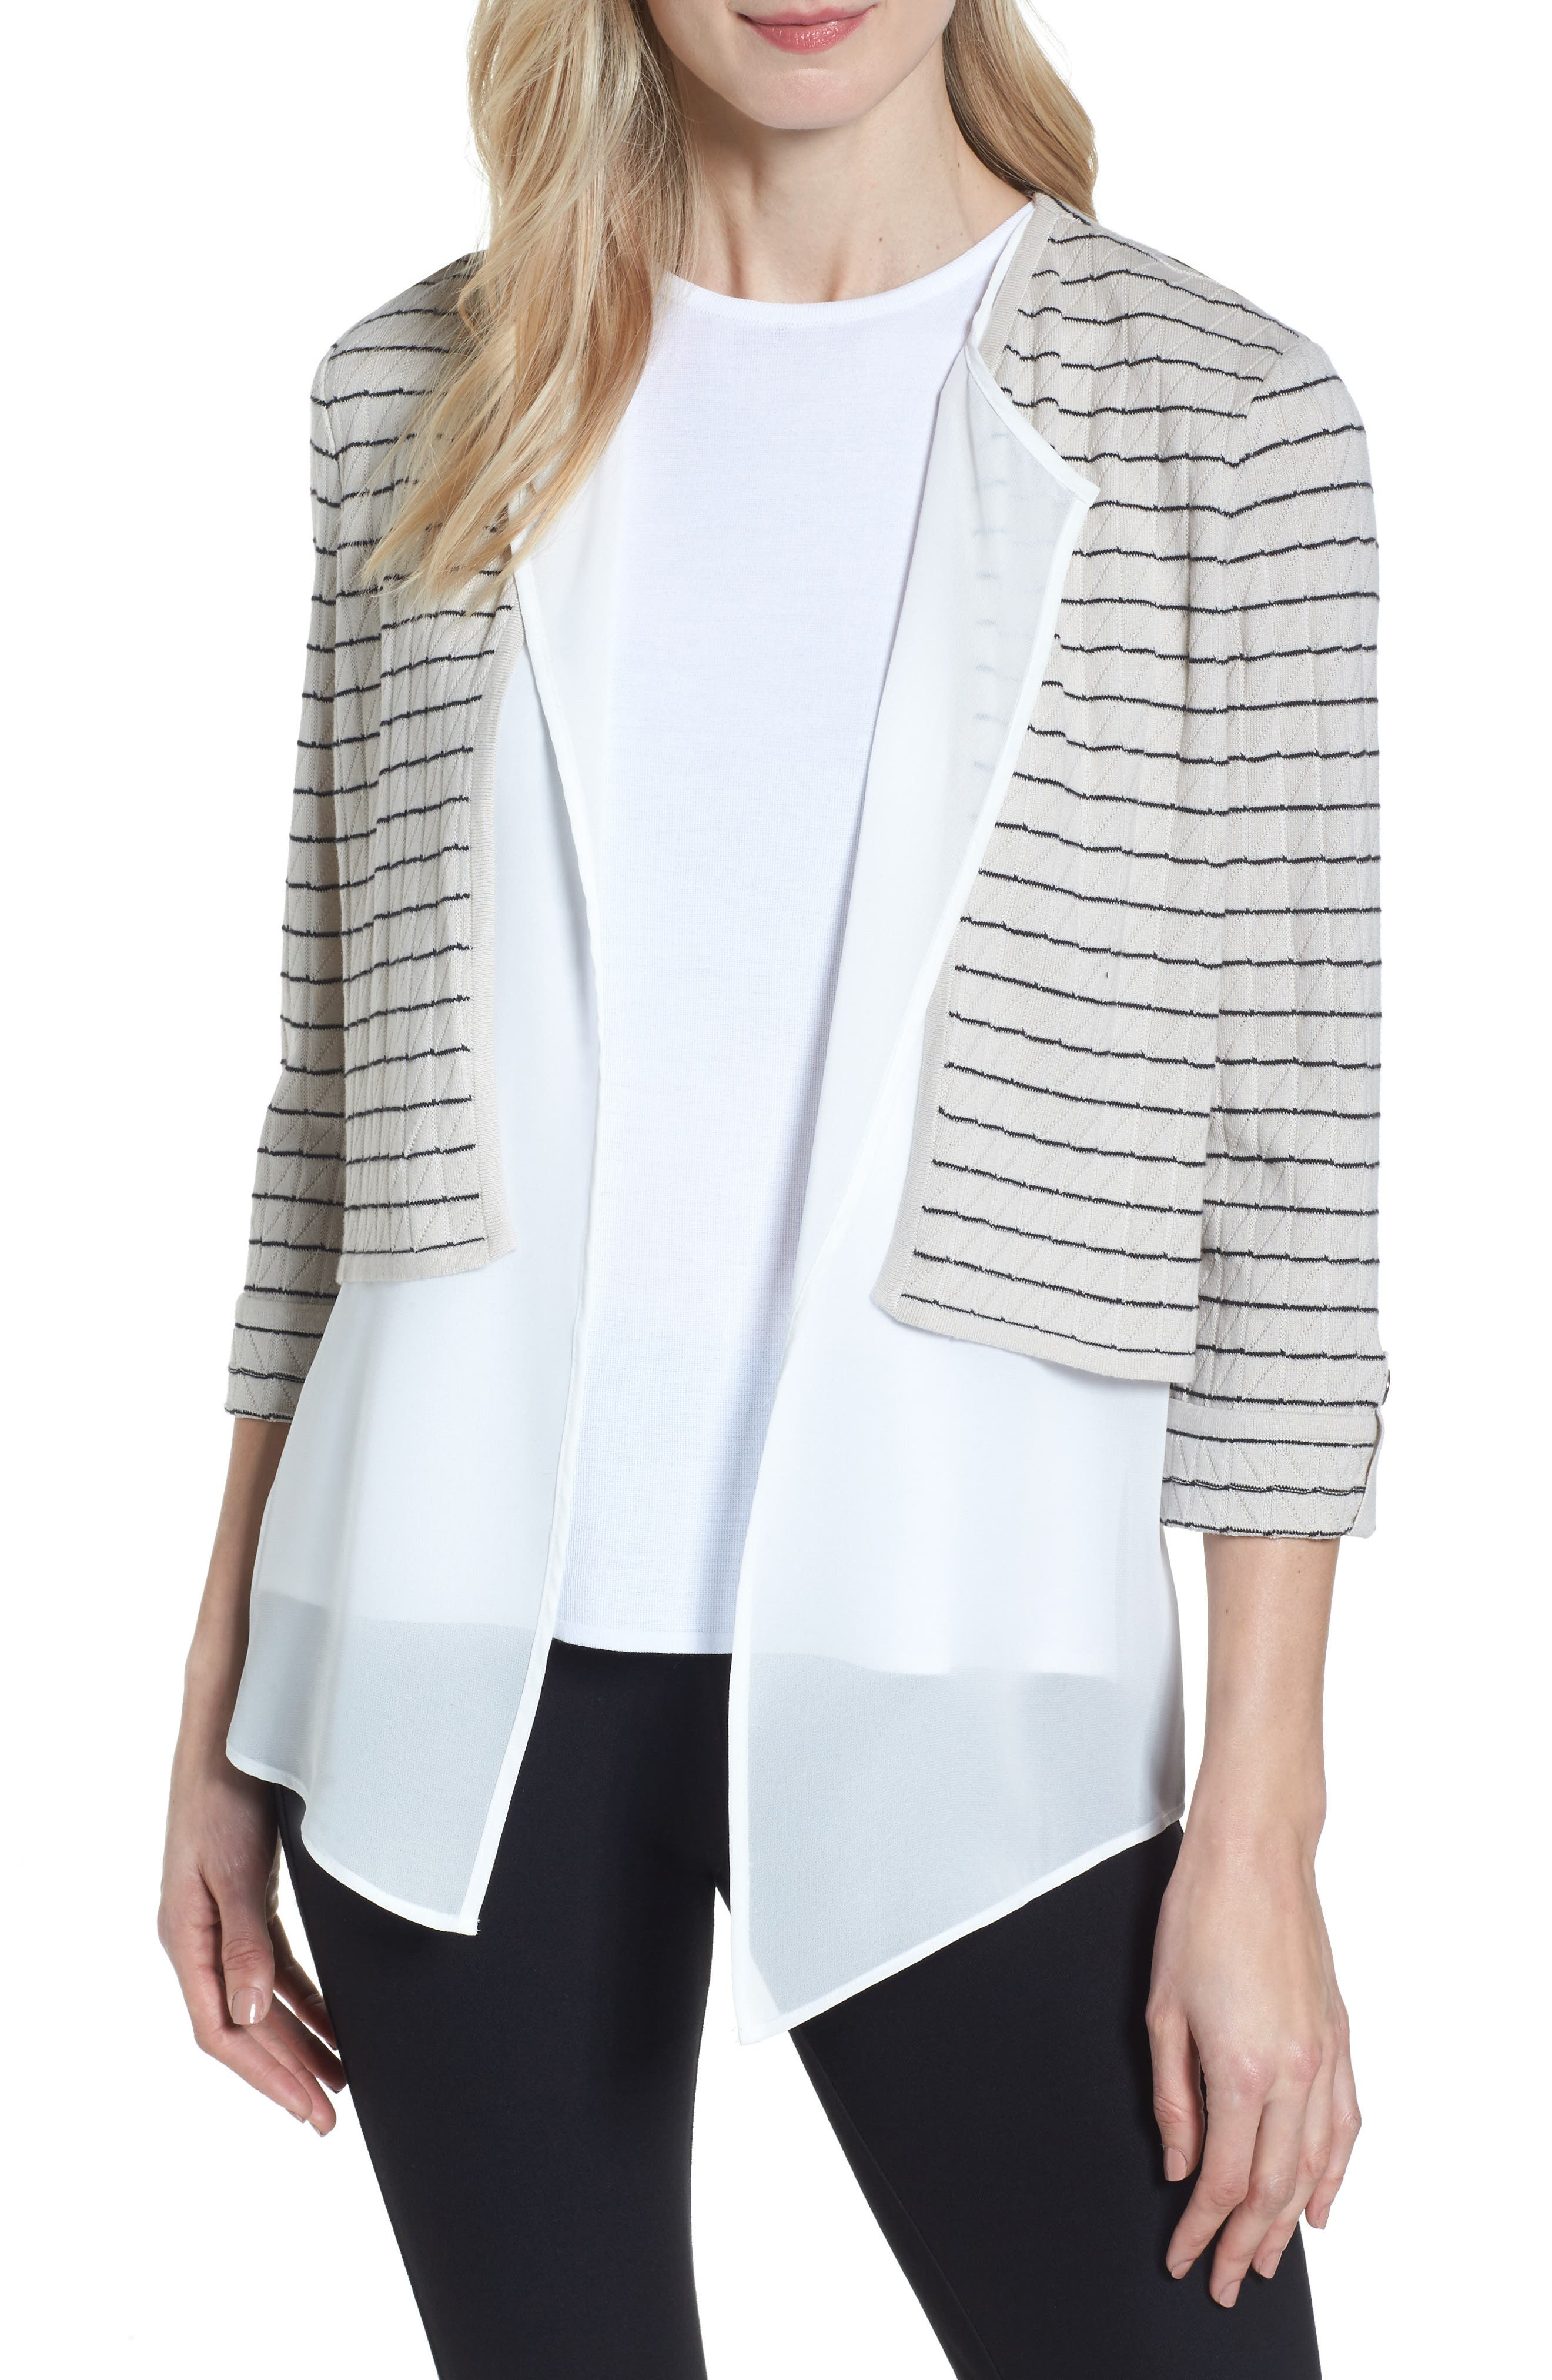 Layered Look Knit Jacket,                             Main thumbnail 1, color,                             Almond Beige/ Black/ White